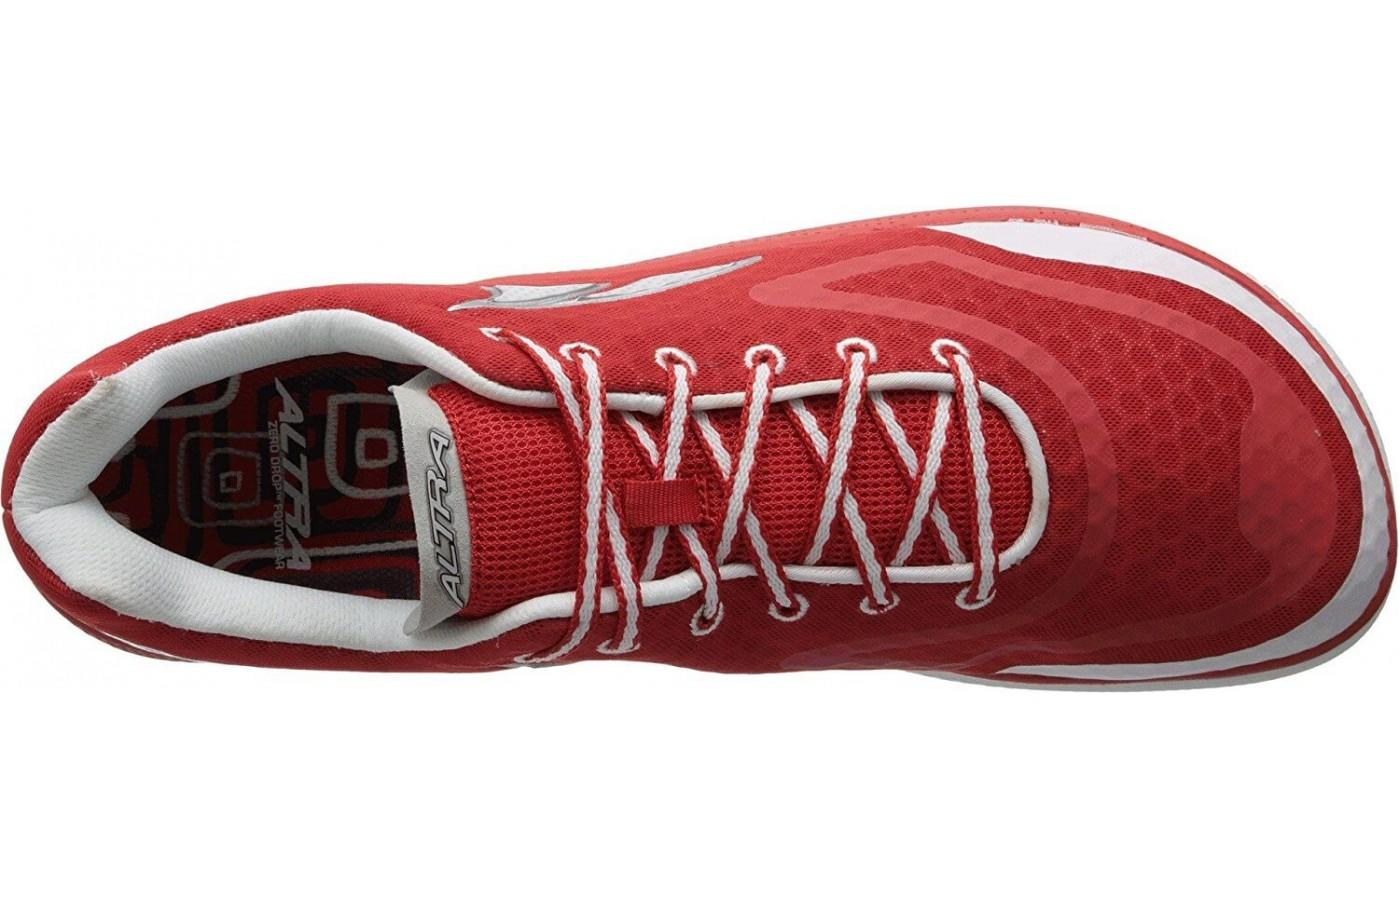 the Altra Paradigm has an extra-wide toe box